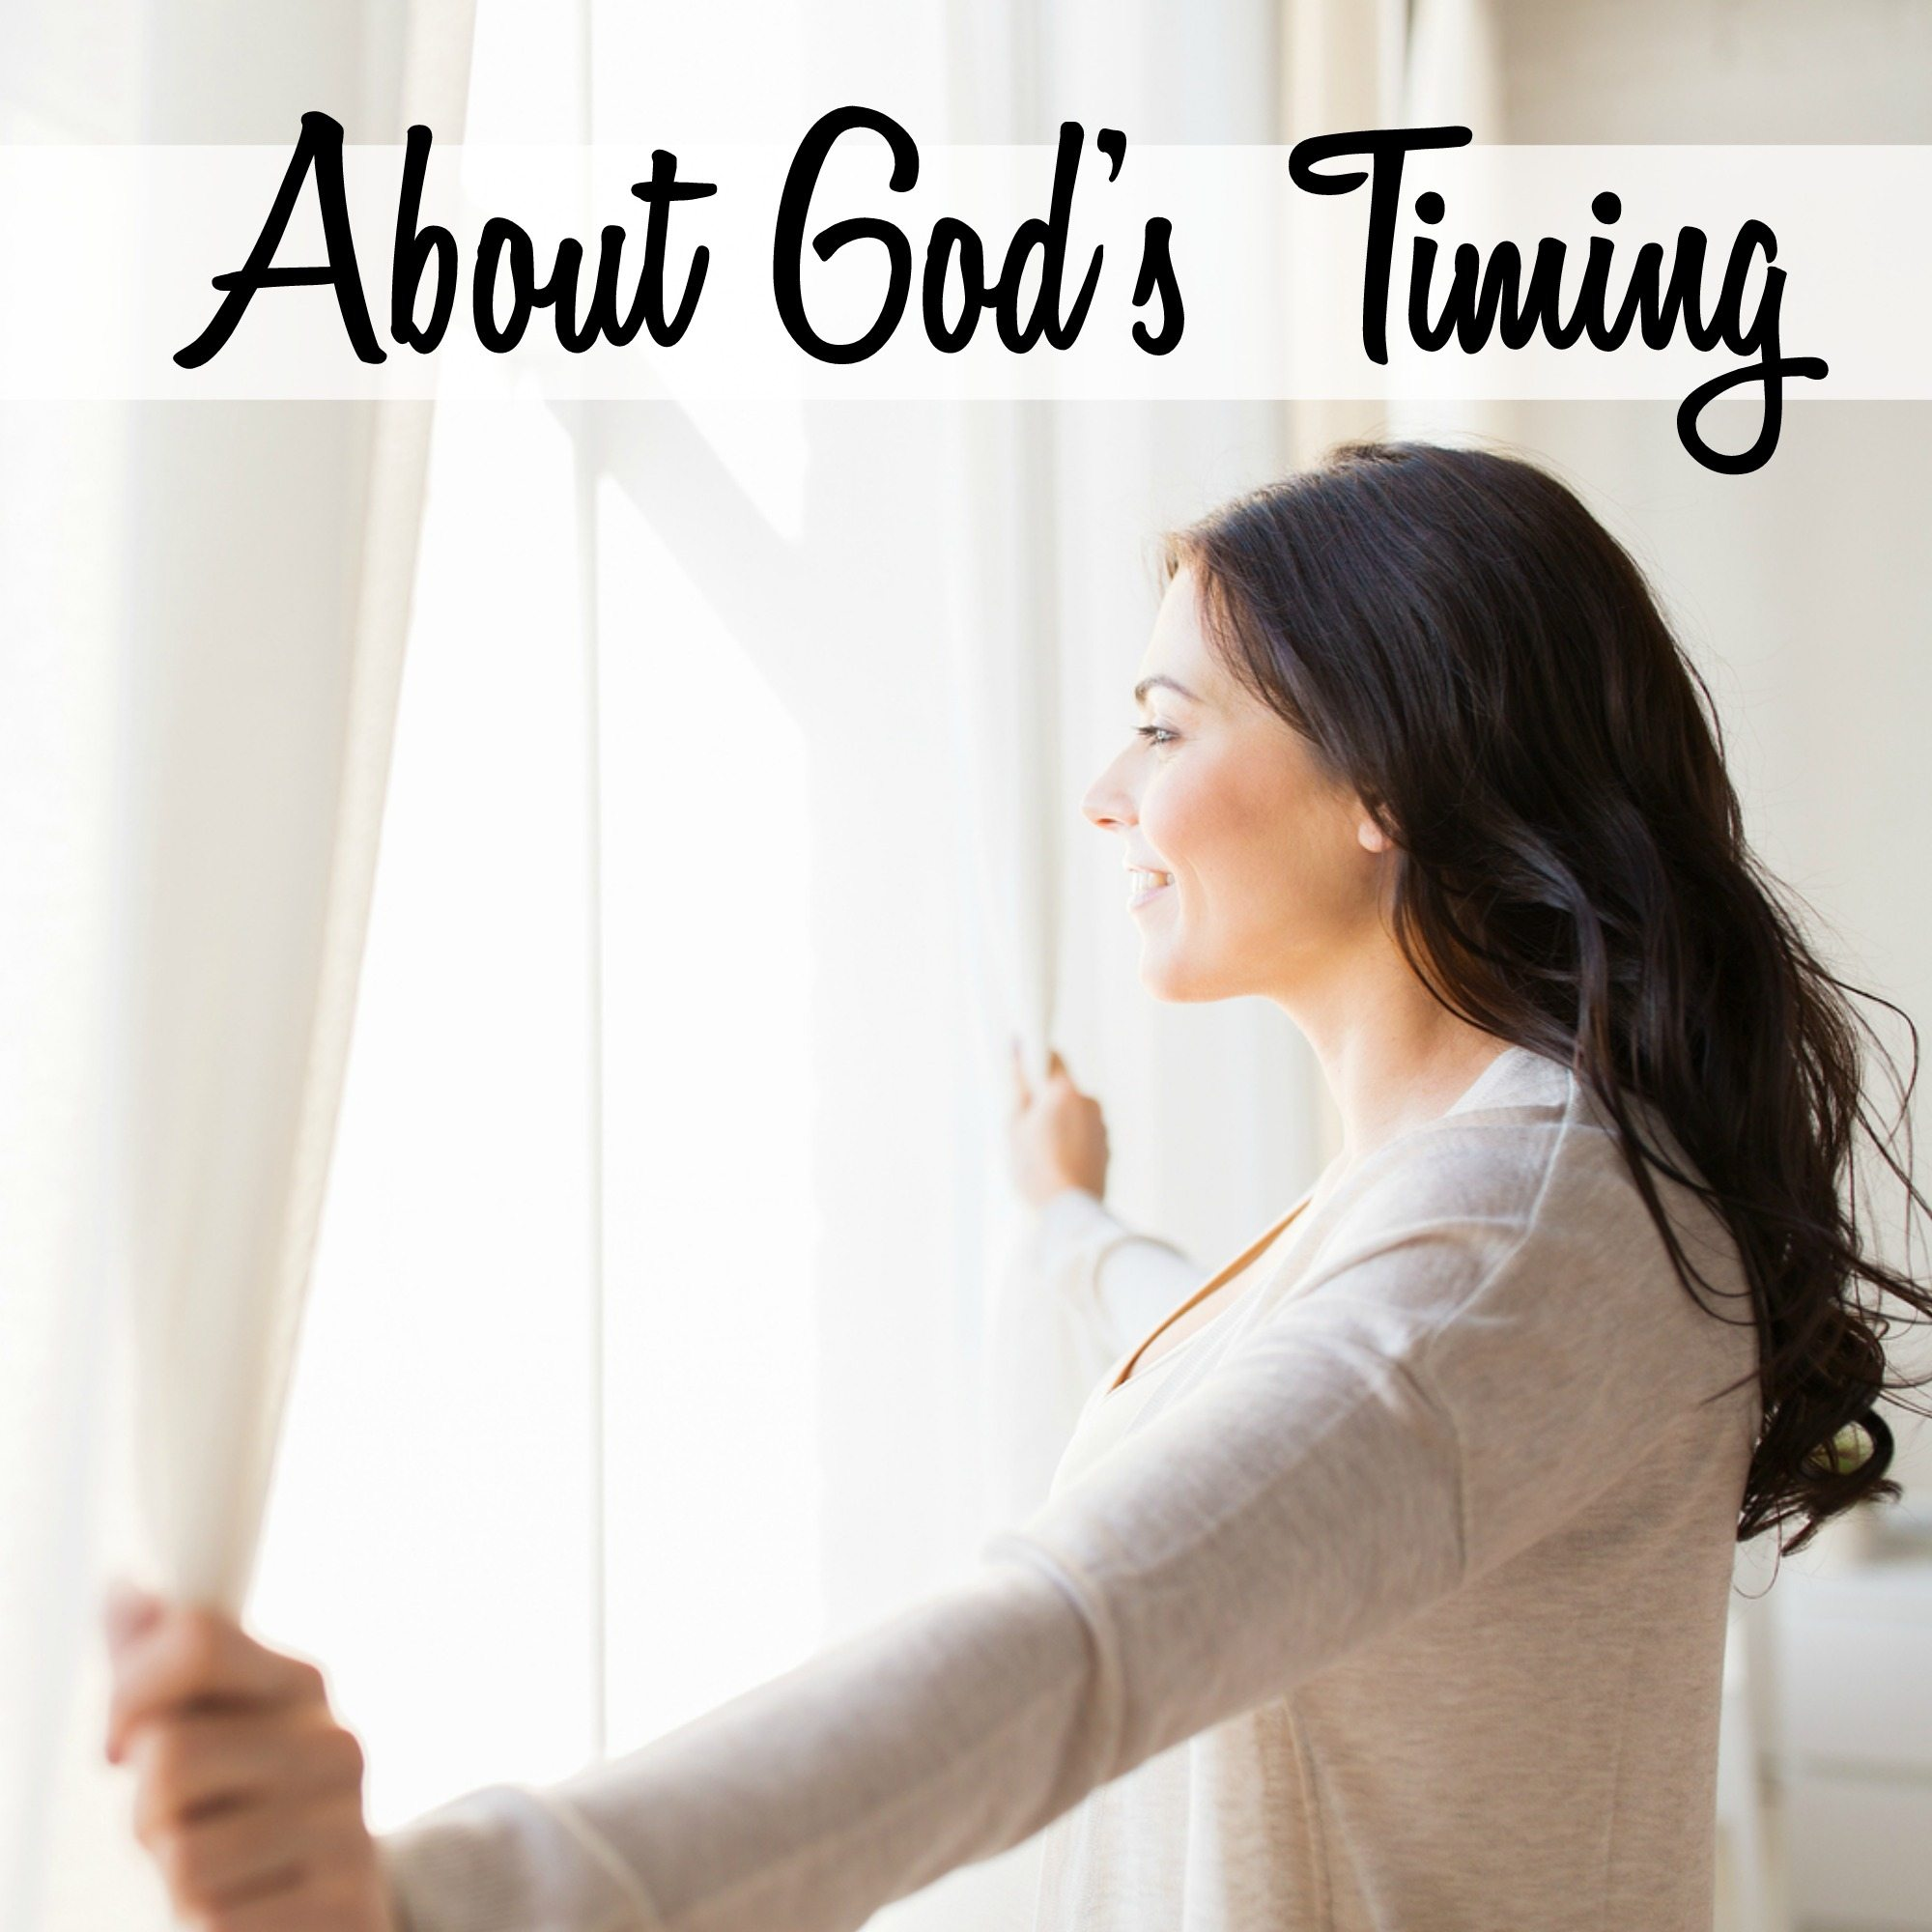 About God's Timing…